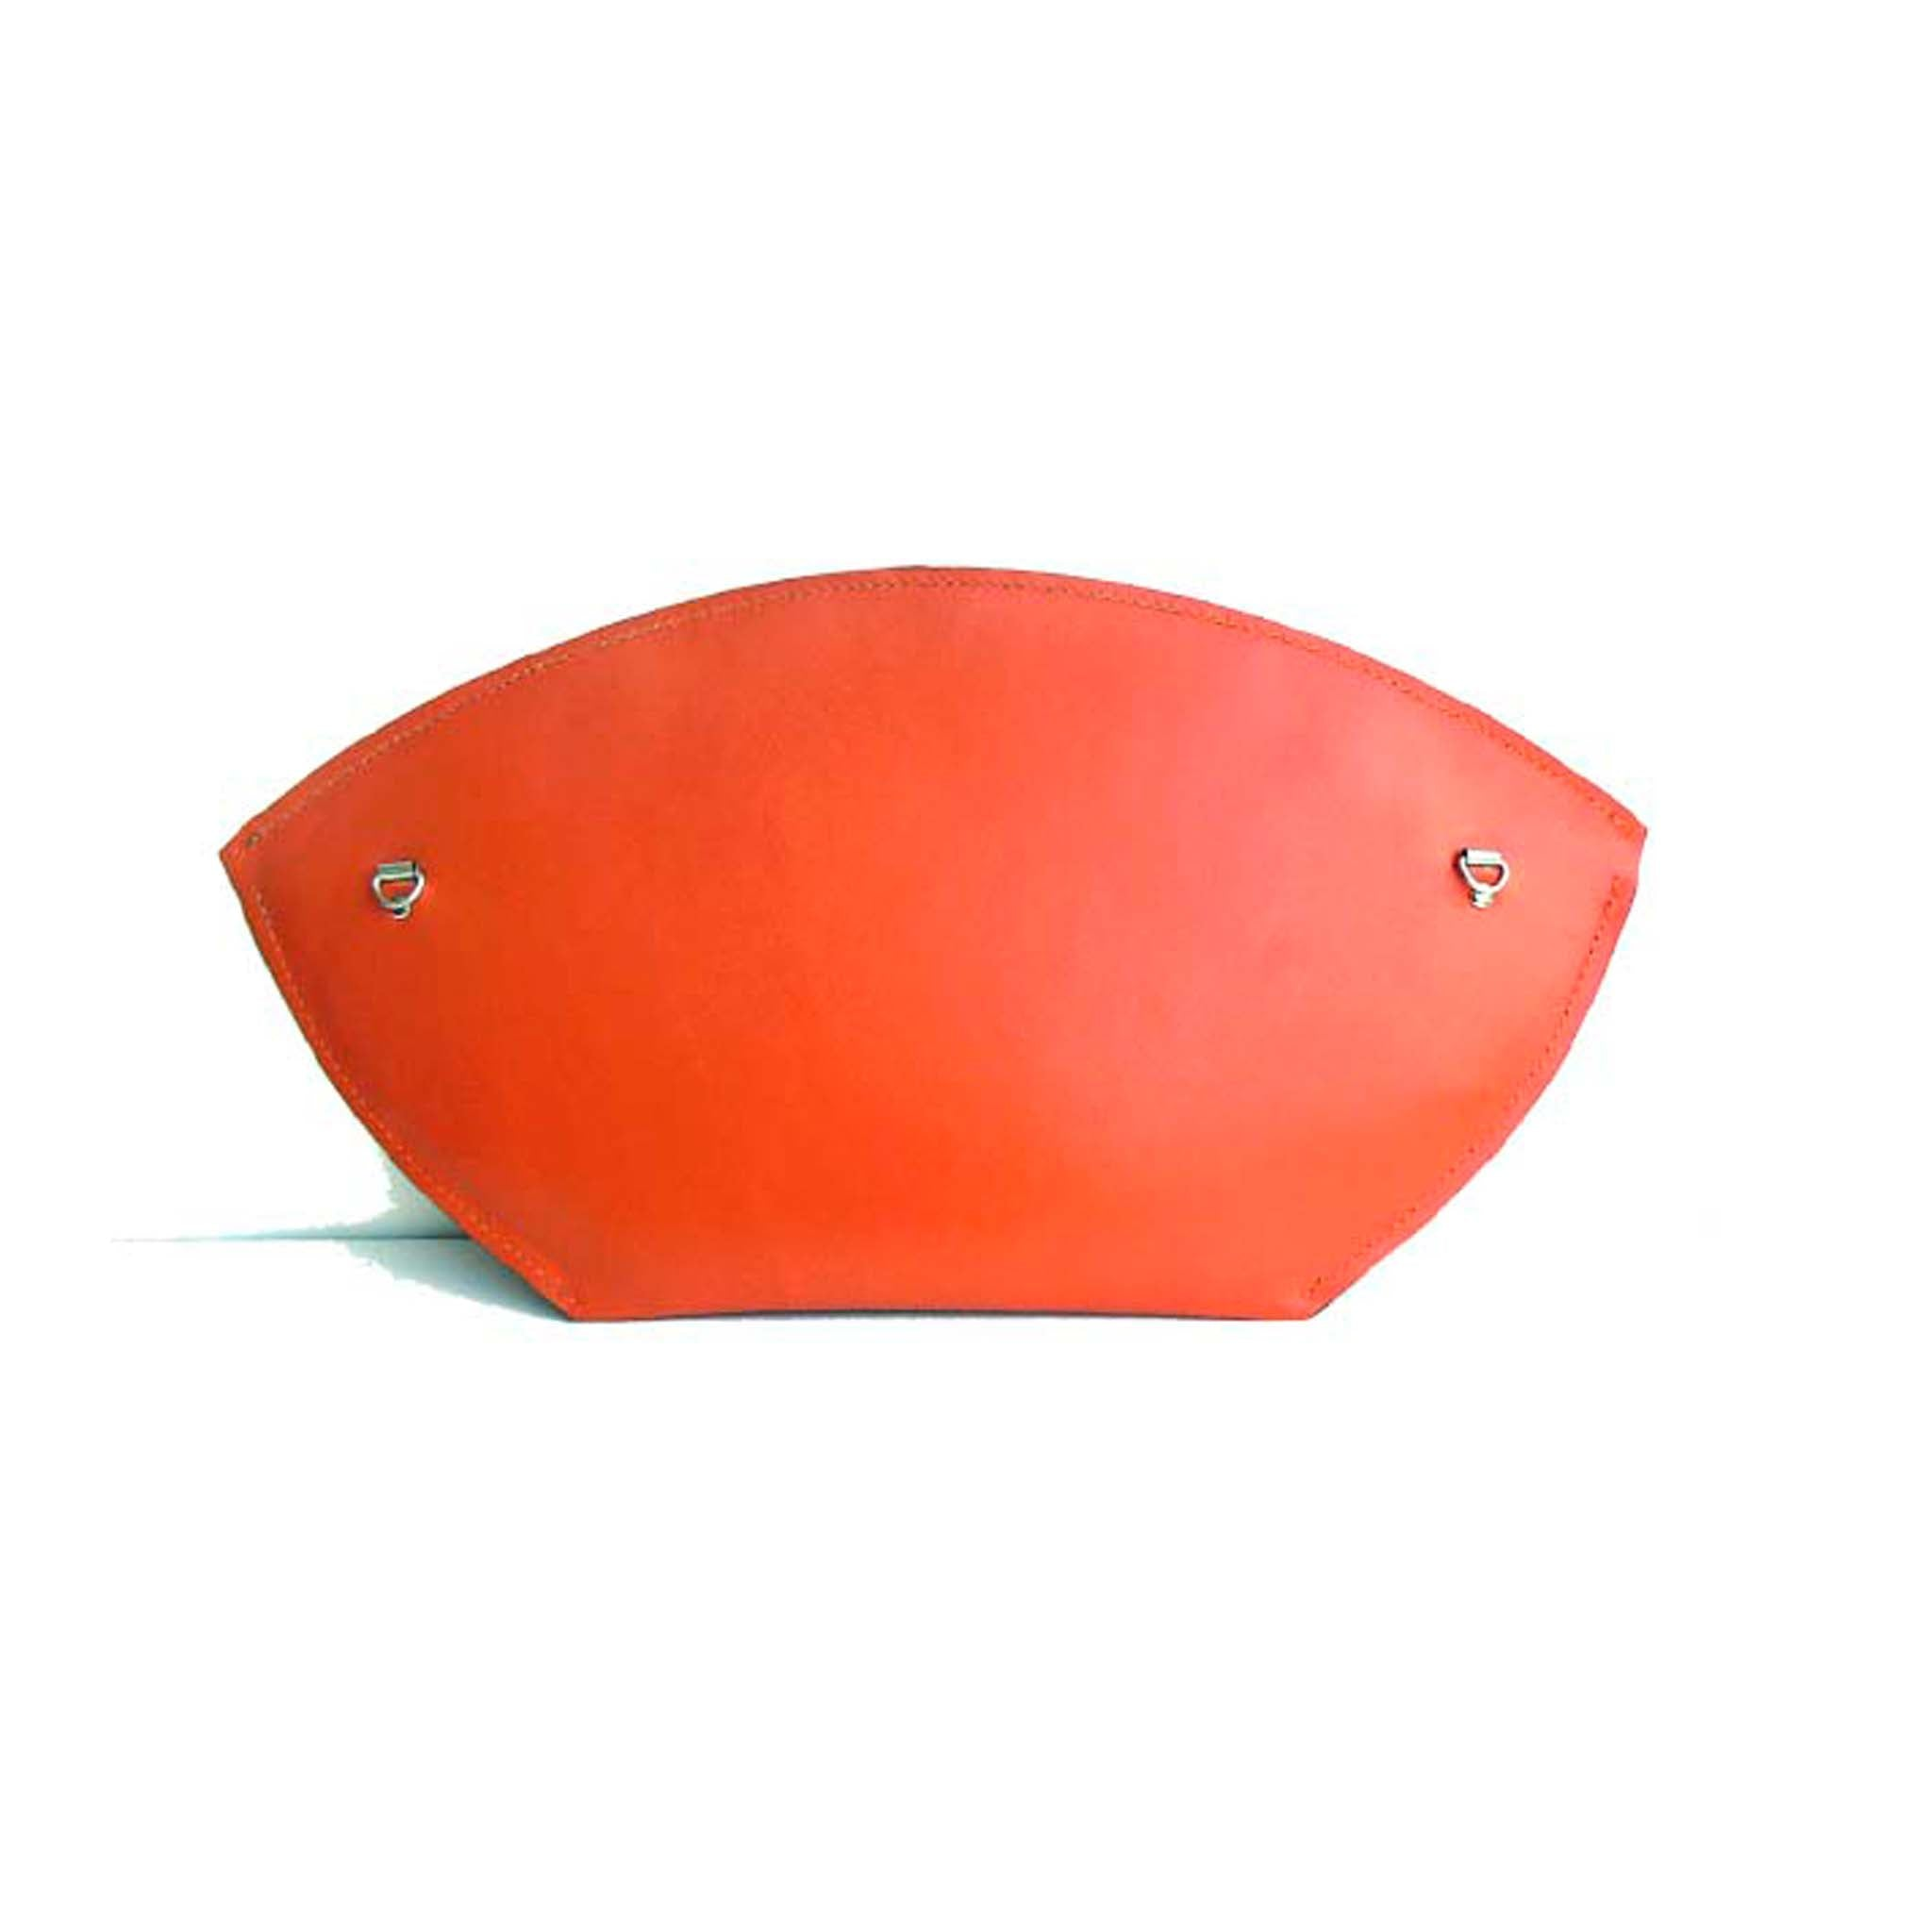 Orange Clutch Bag with Strap